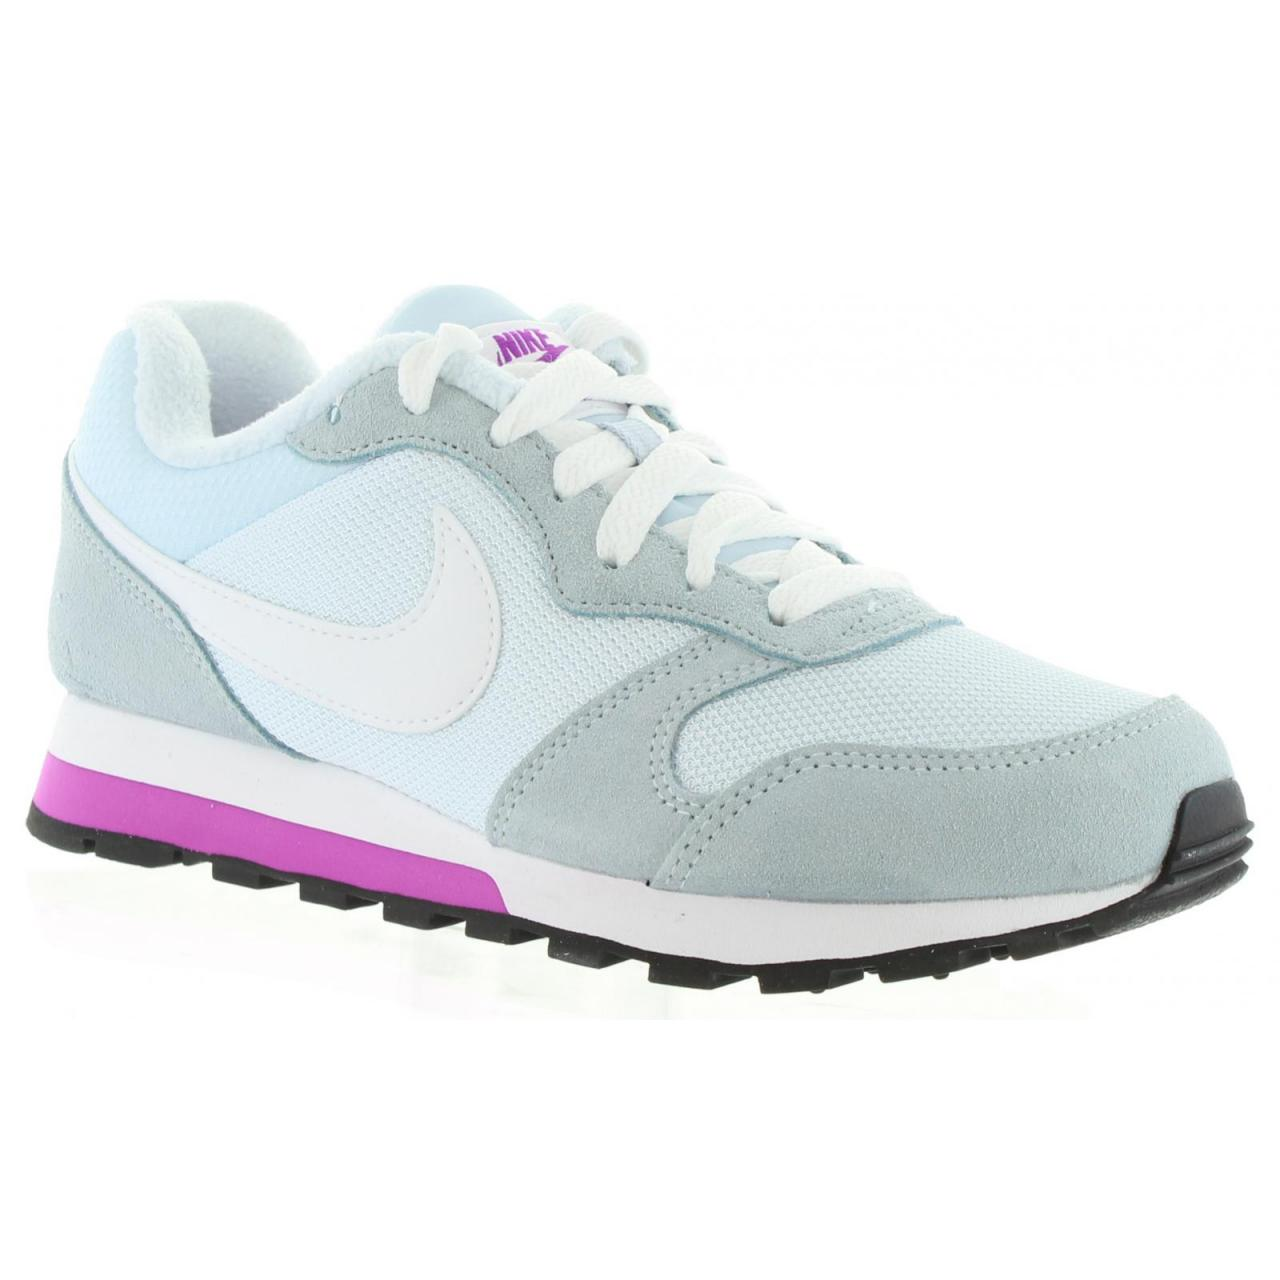 best service 185e0 3c4f0 Zapatillas-Deporte-Nike-Blanco-749869-MD-RUNNER-2-